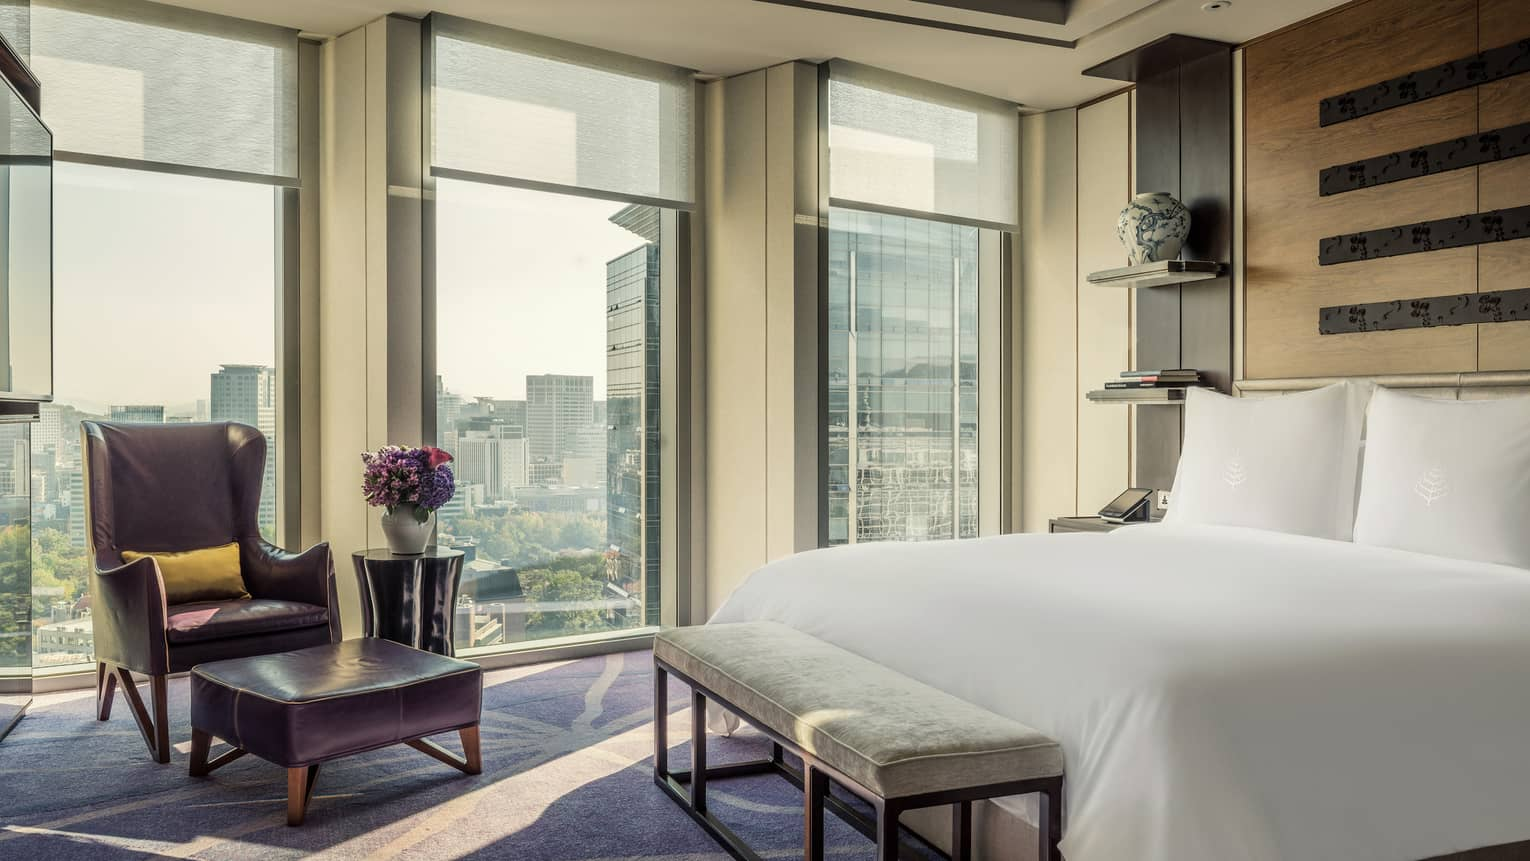 Sejong Two-Bedroom Suite bed with bench at foot, leather wingback armchair and ottoman by window with Sejong Road views